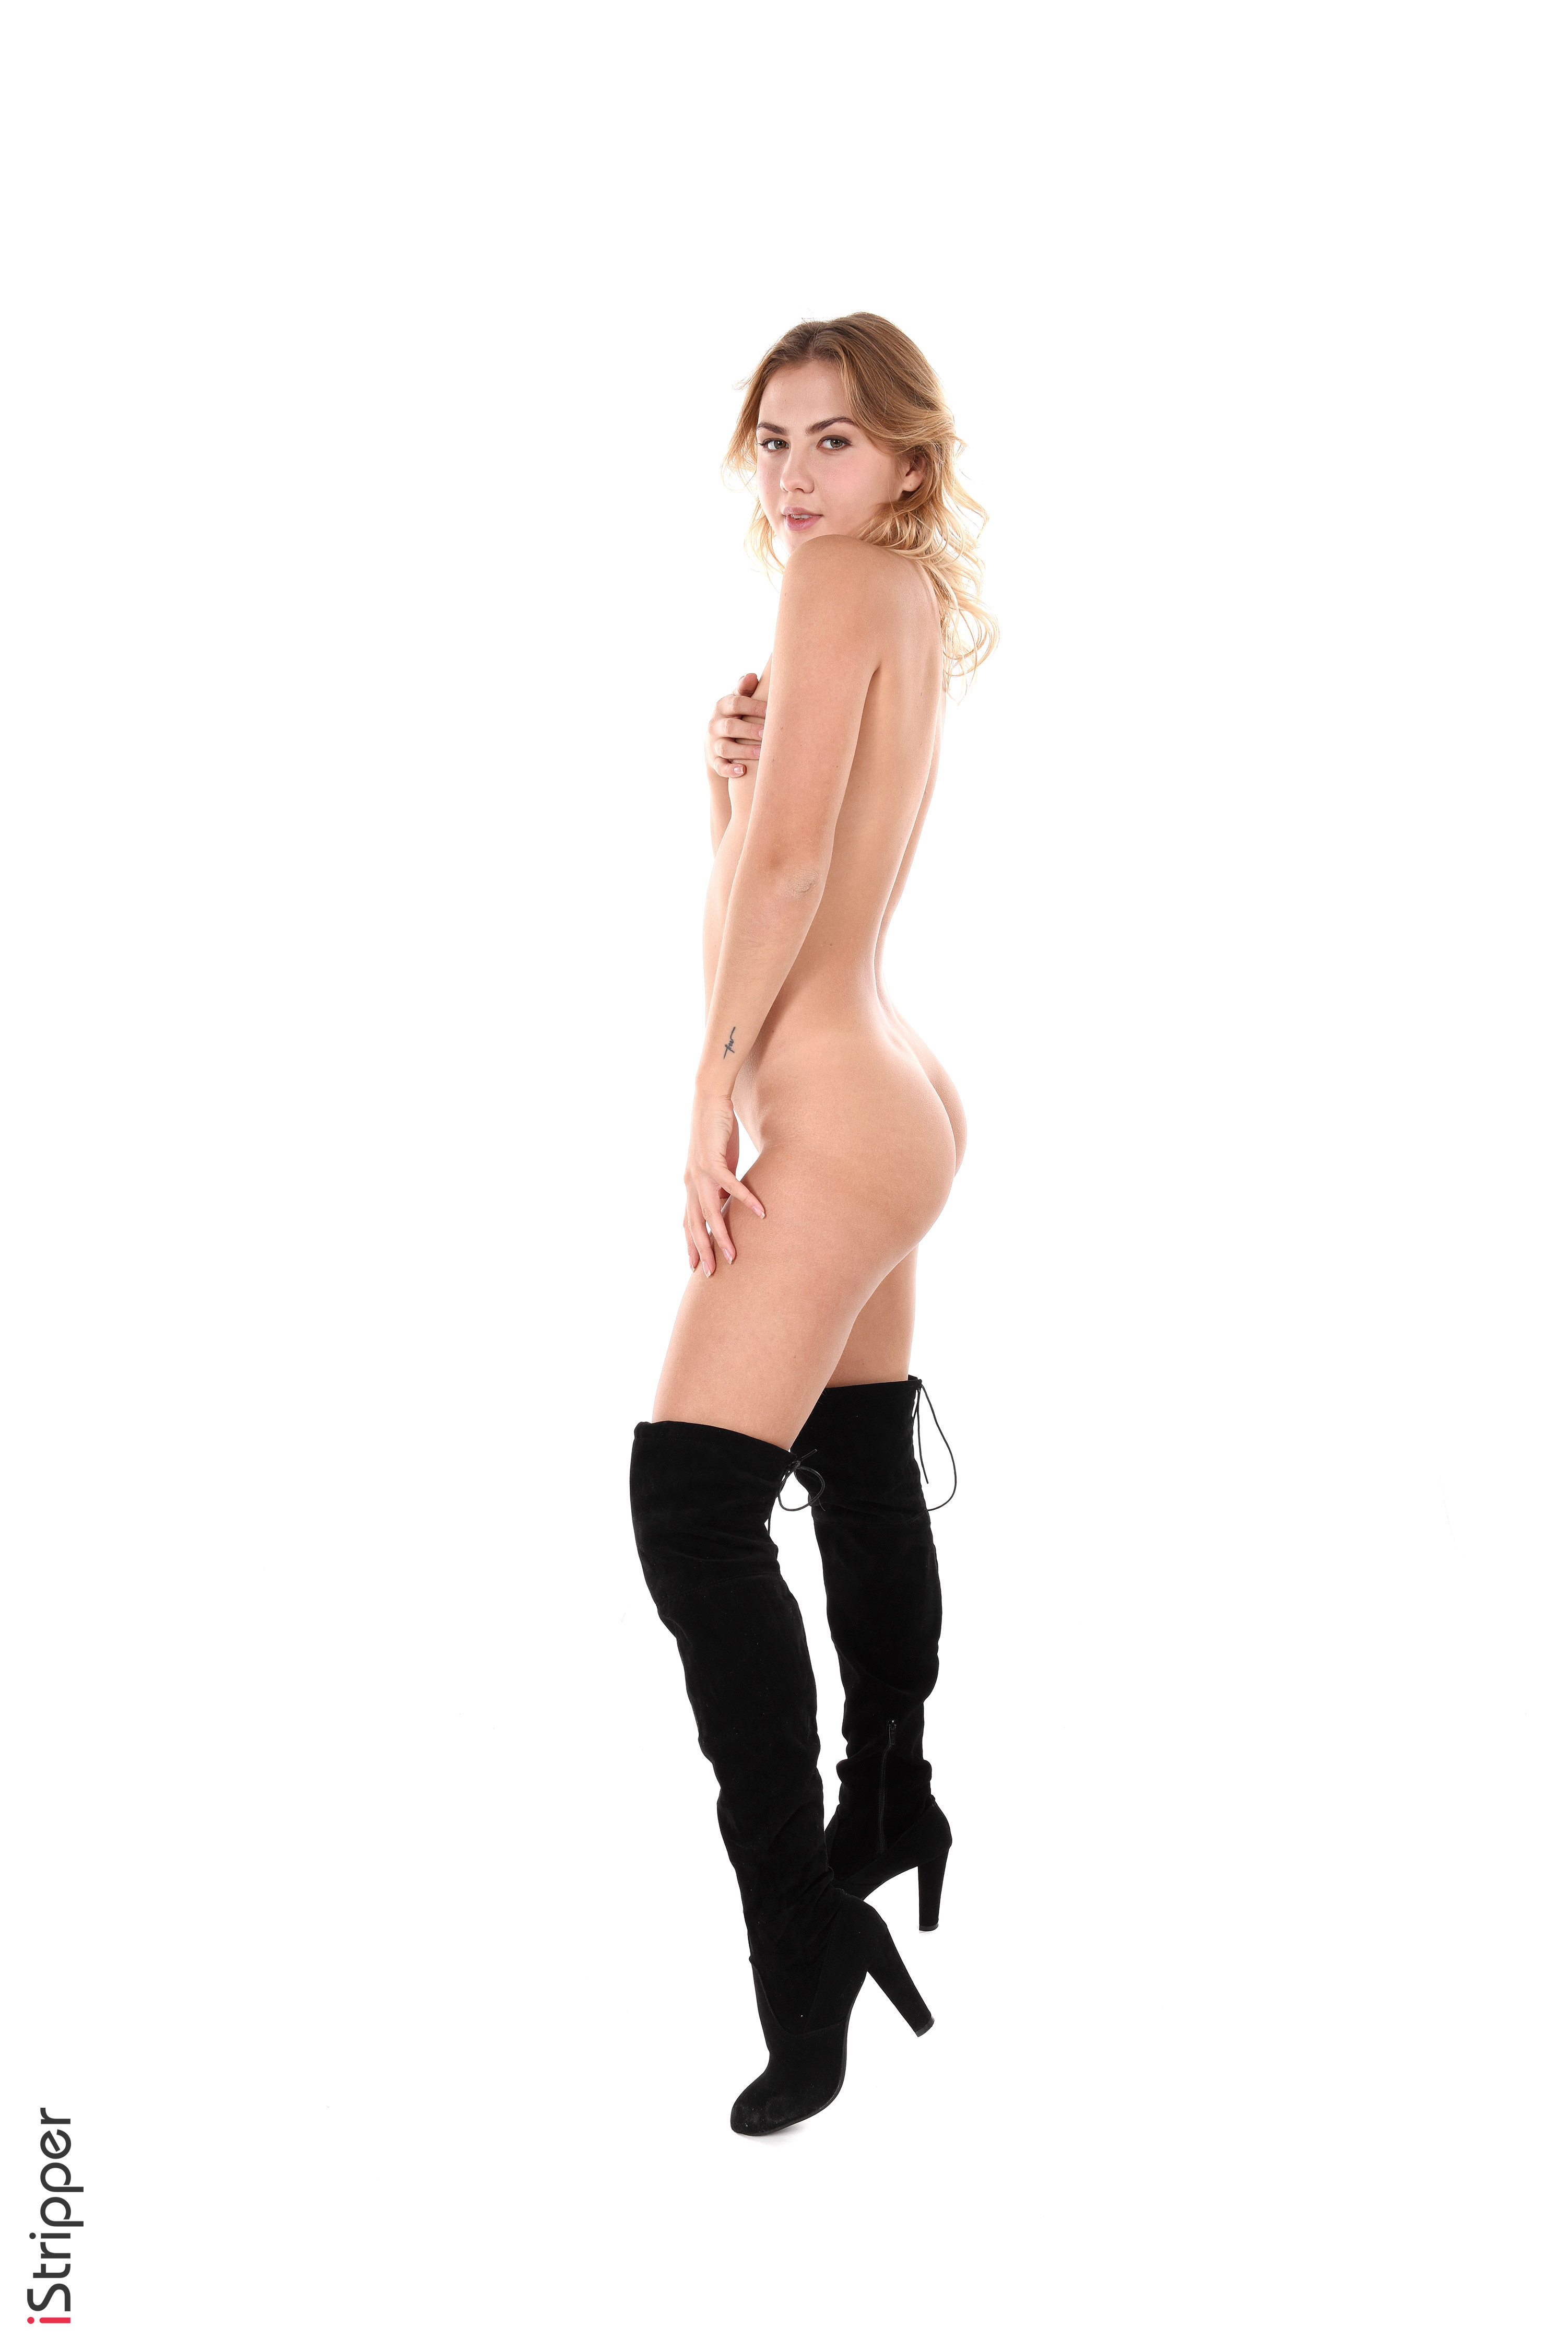 free nude girls wallpapers